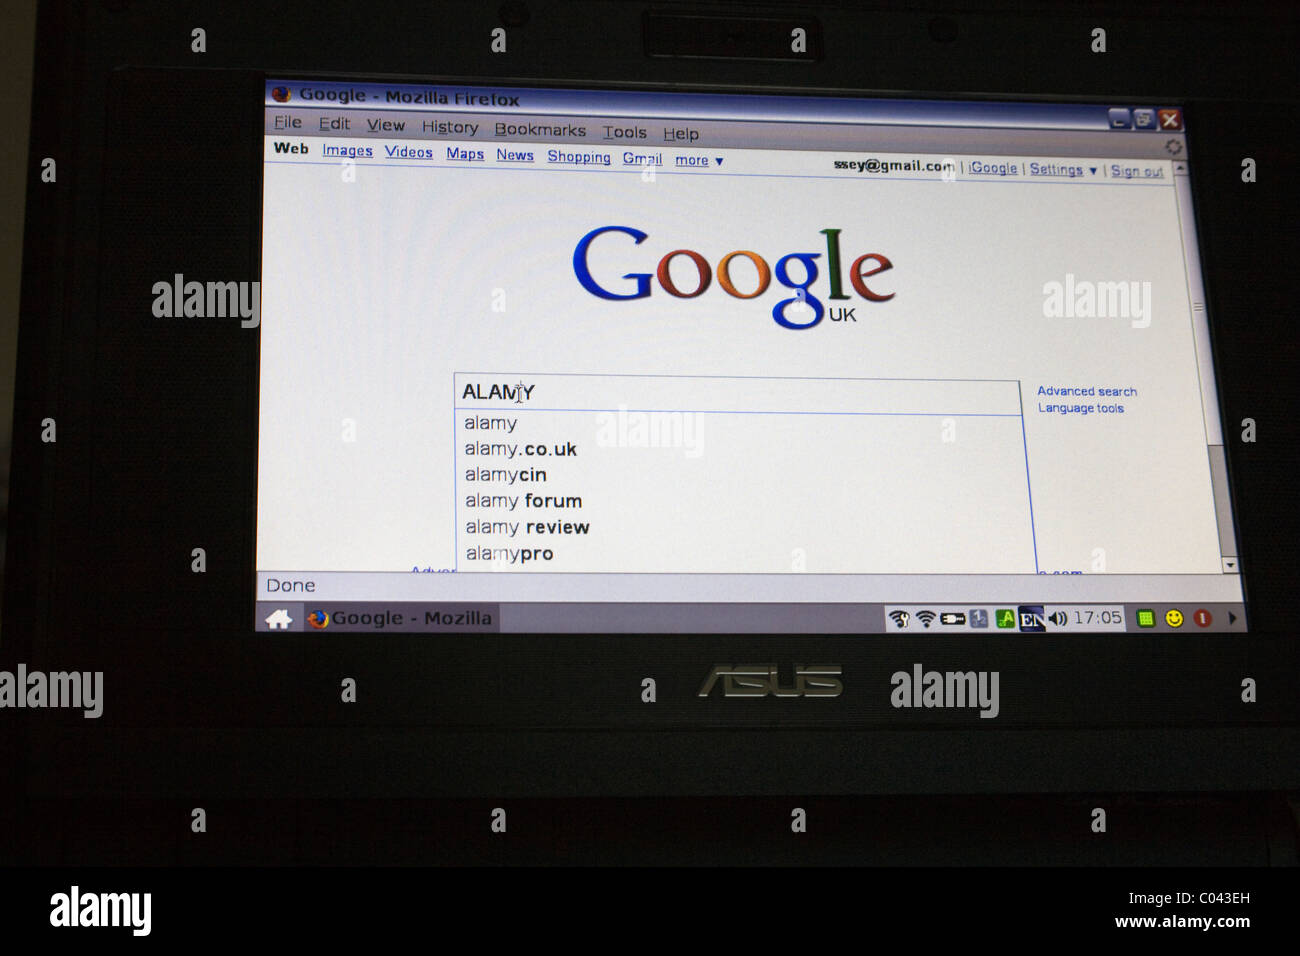 Close up computer screen using Google Mozilla Firefox search